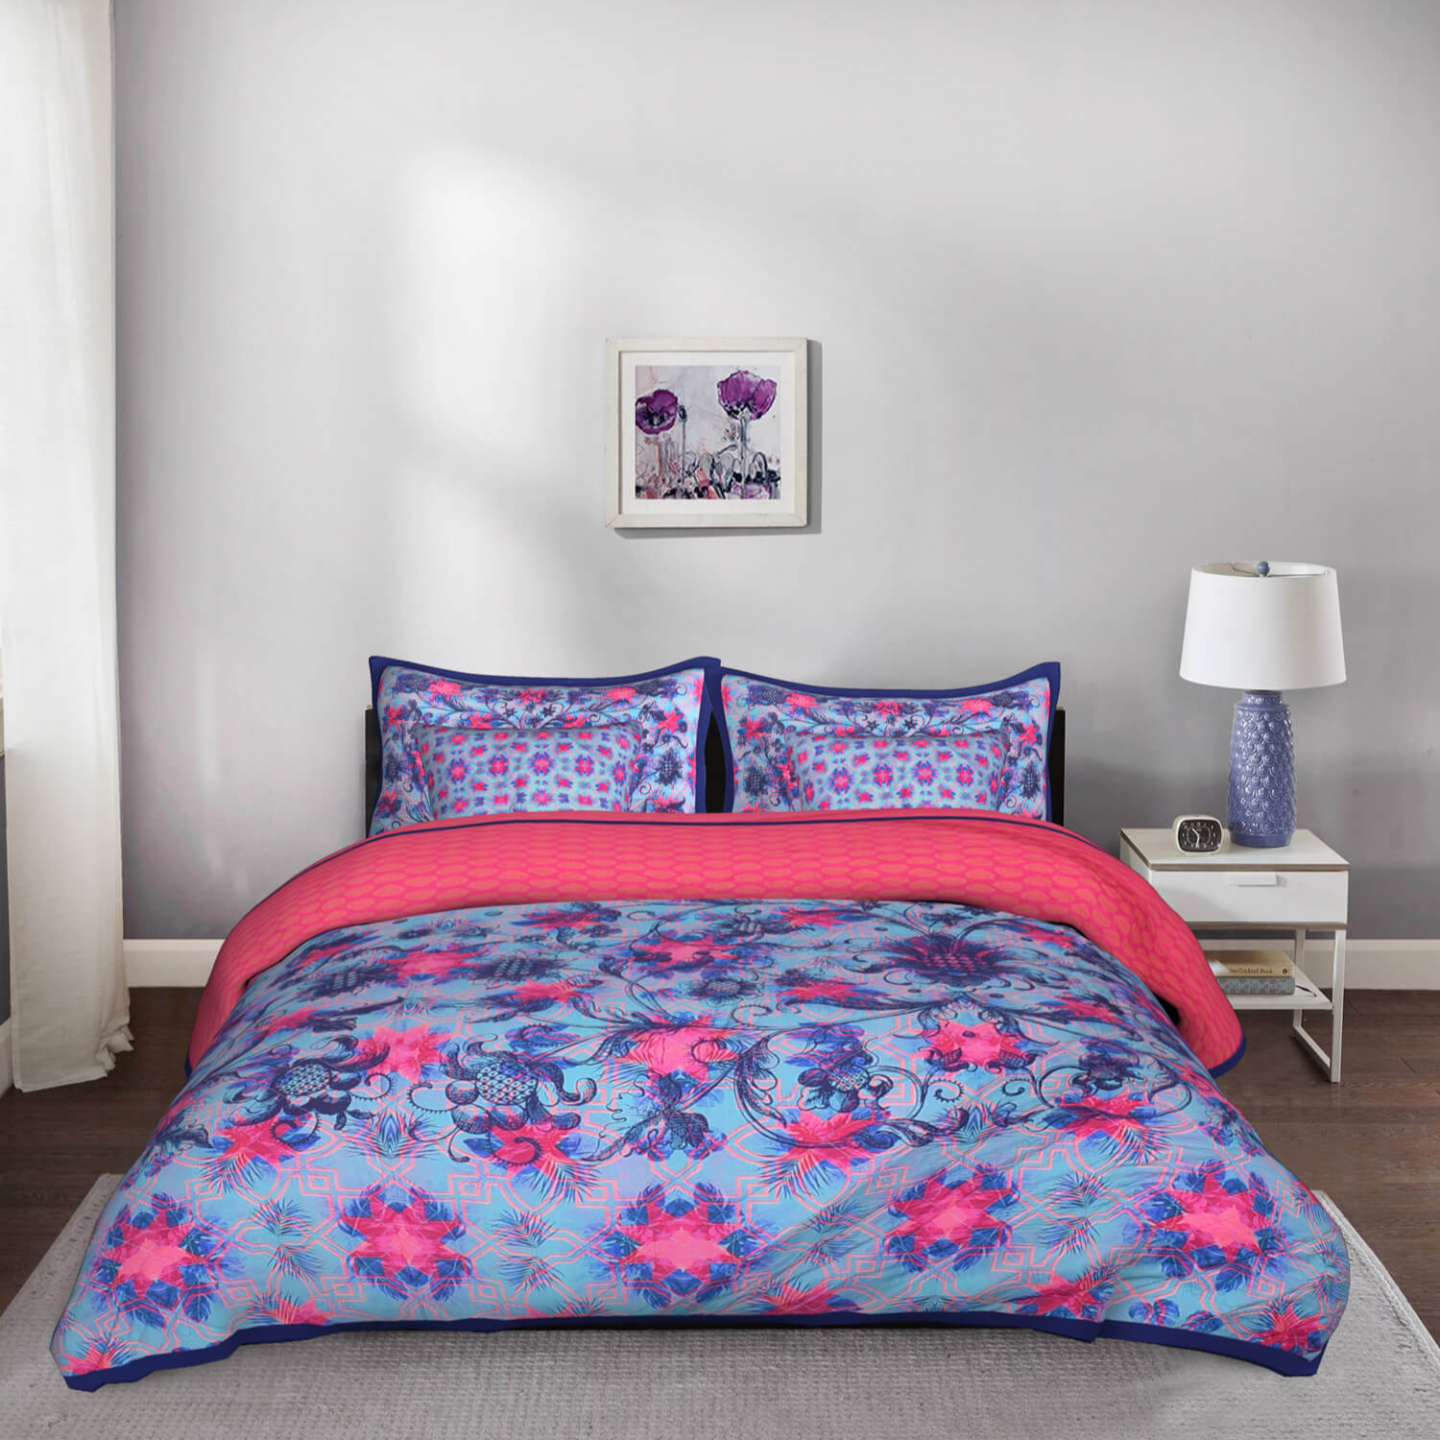 Psychedelic Abstract King Size Cotton Quilted Bedspread